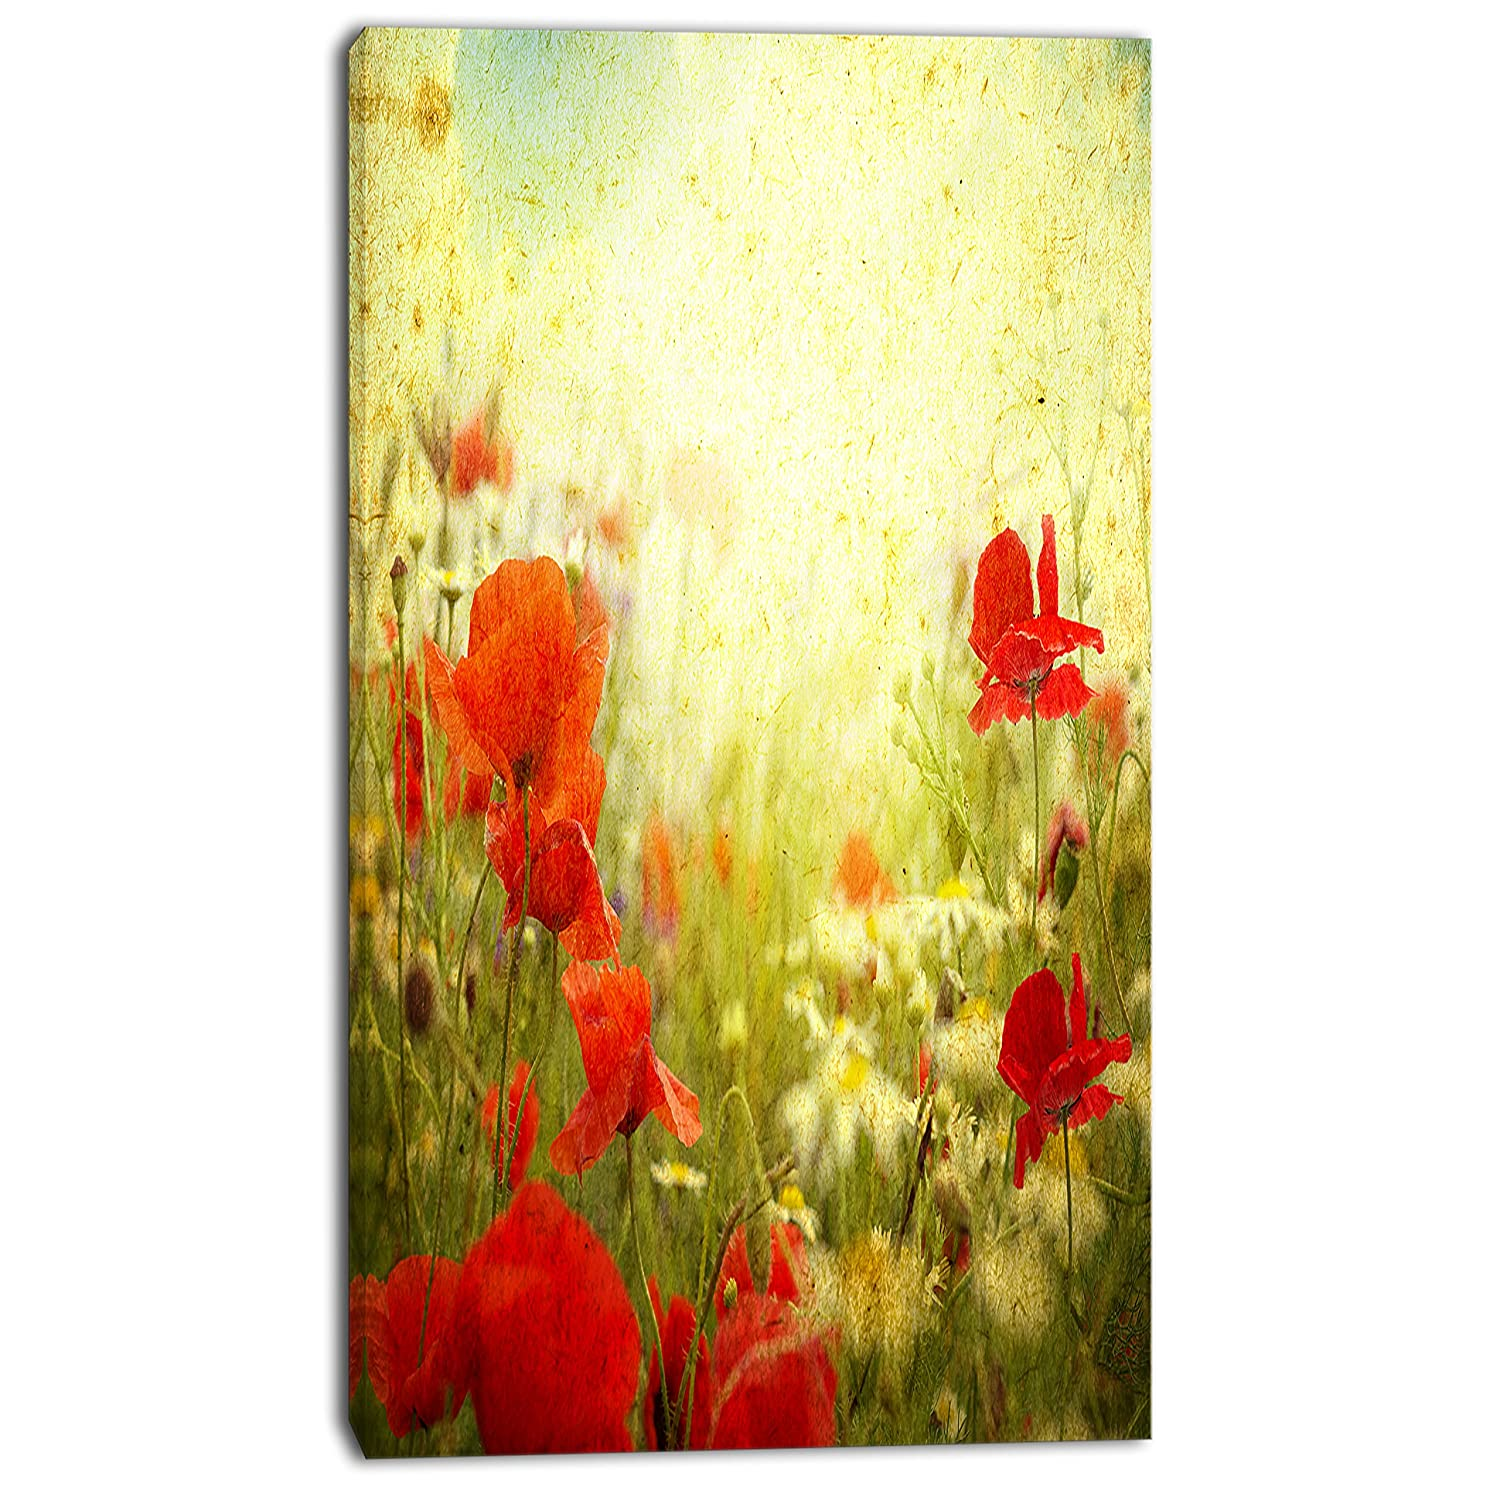 Amazon.com: Design Art Grunge Background with Red Poppies Floral on ...